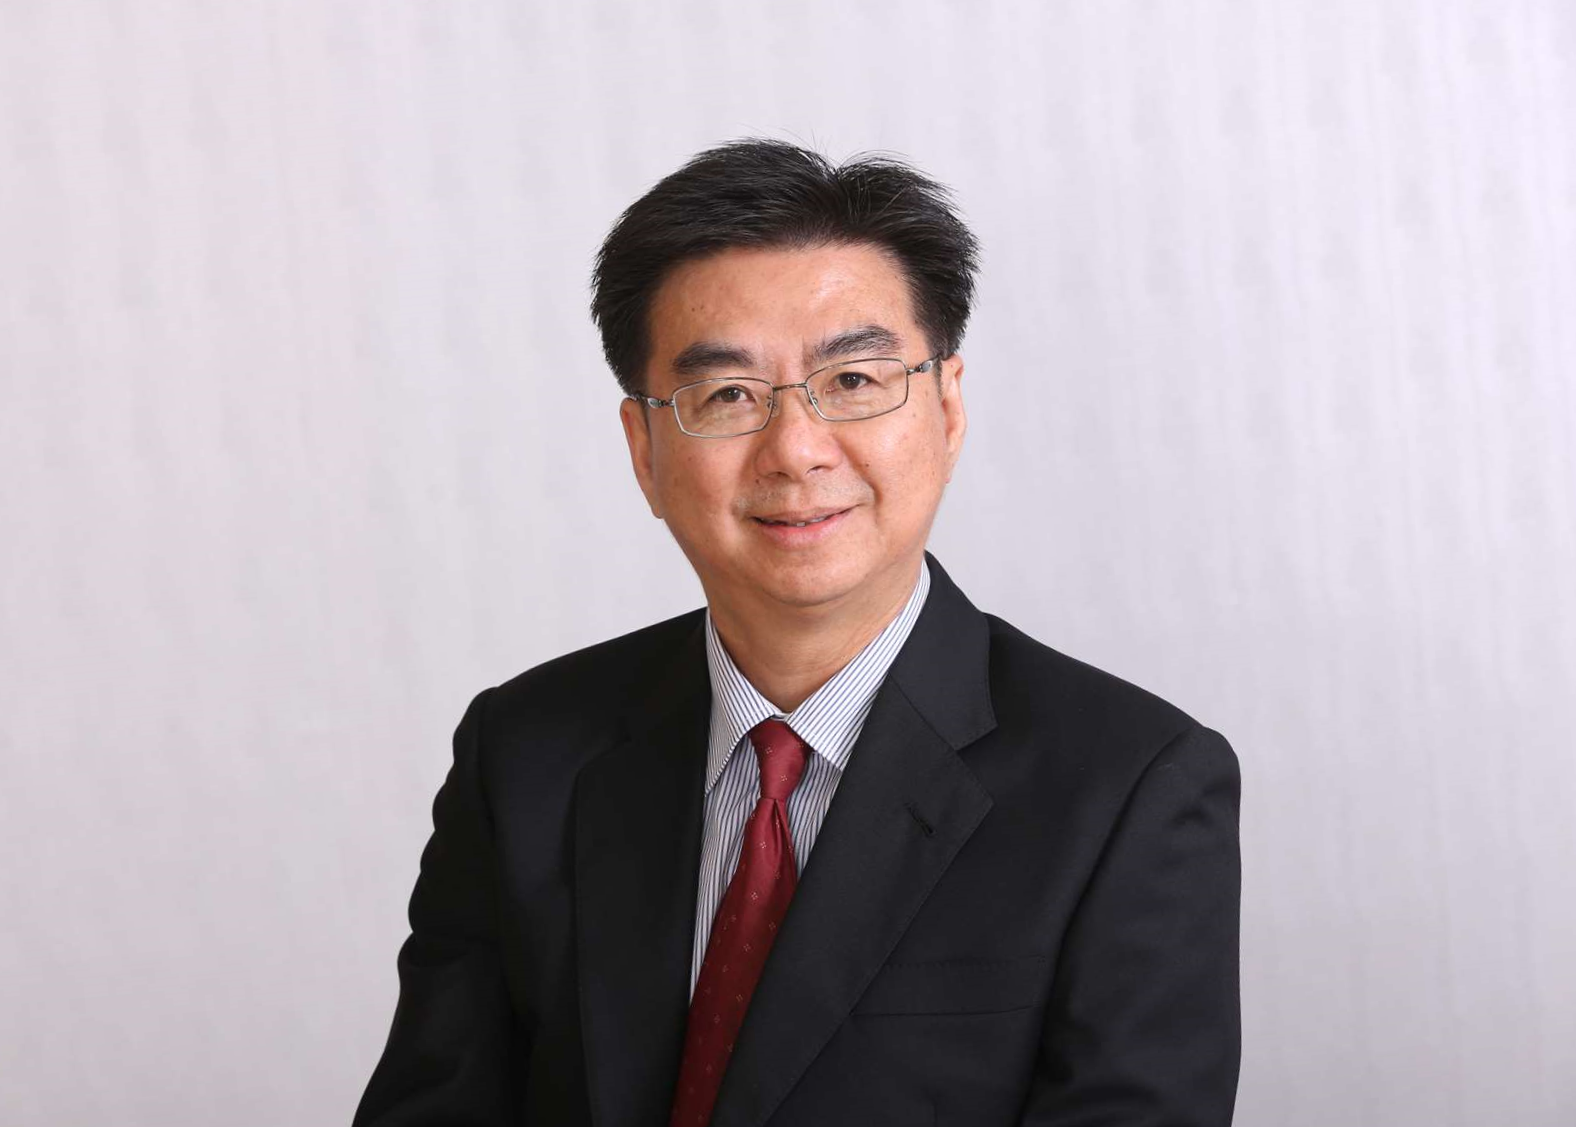 Ong Hock An, Executive Director, Advisory